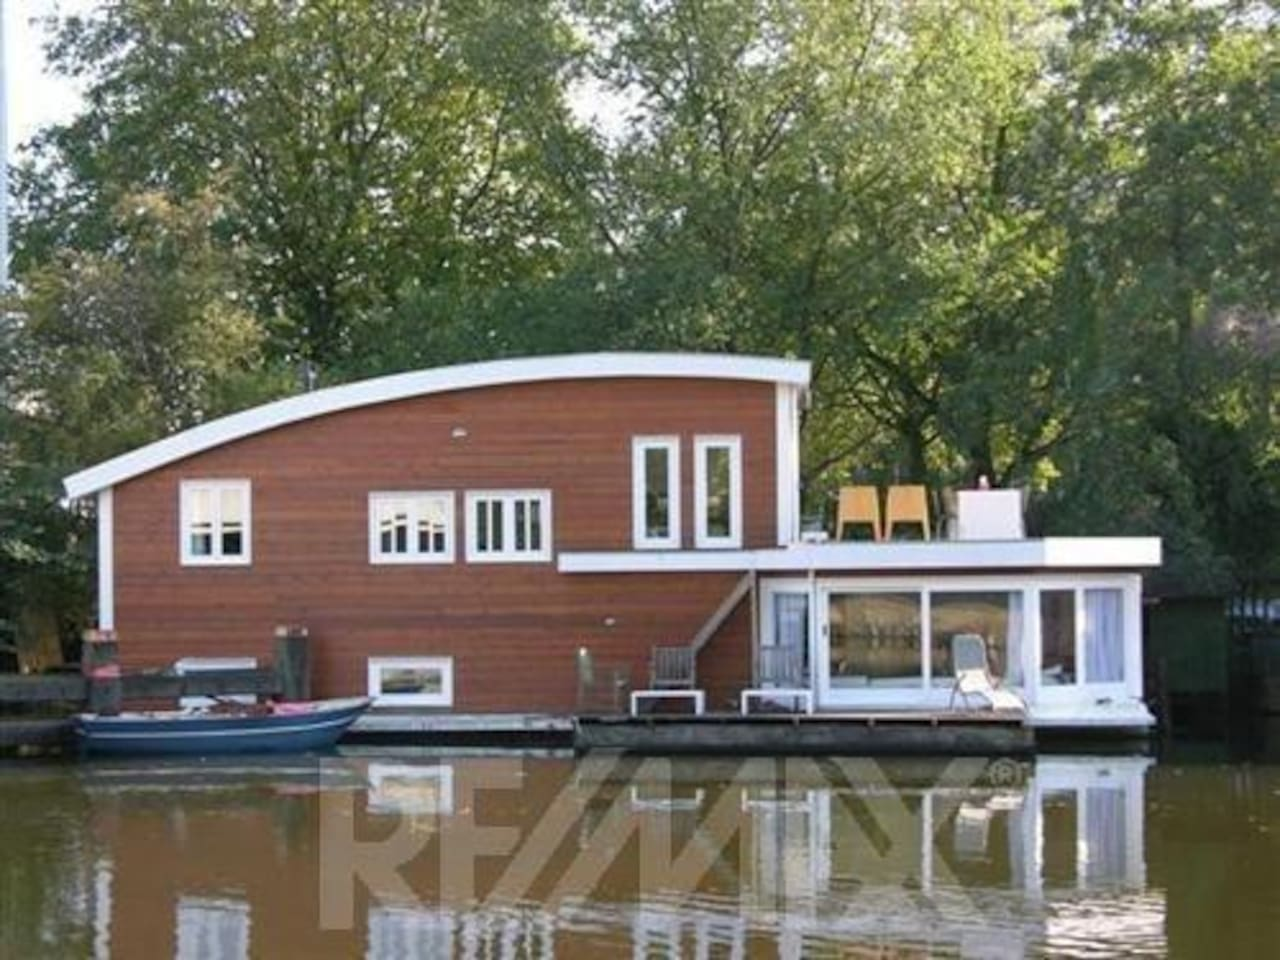 the big modern boat with two terraces and garden but close to a roundabout so city/traffic sounds are included!